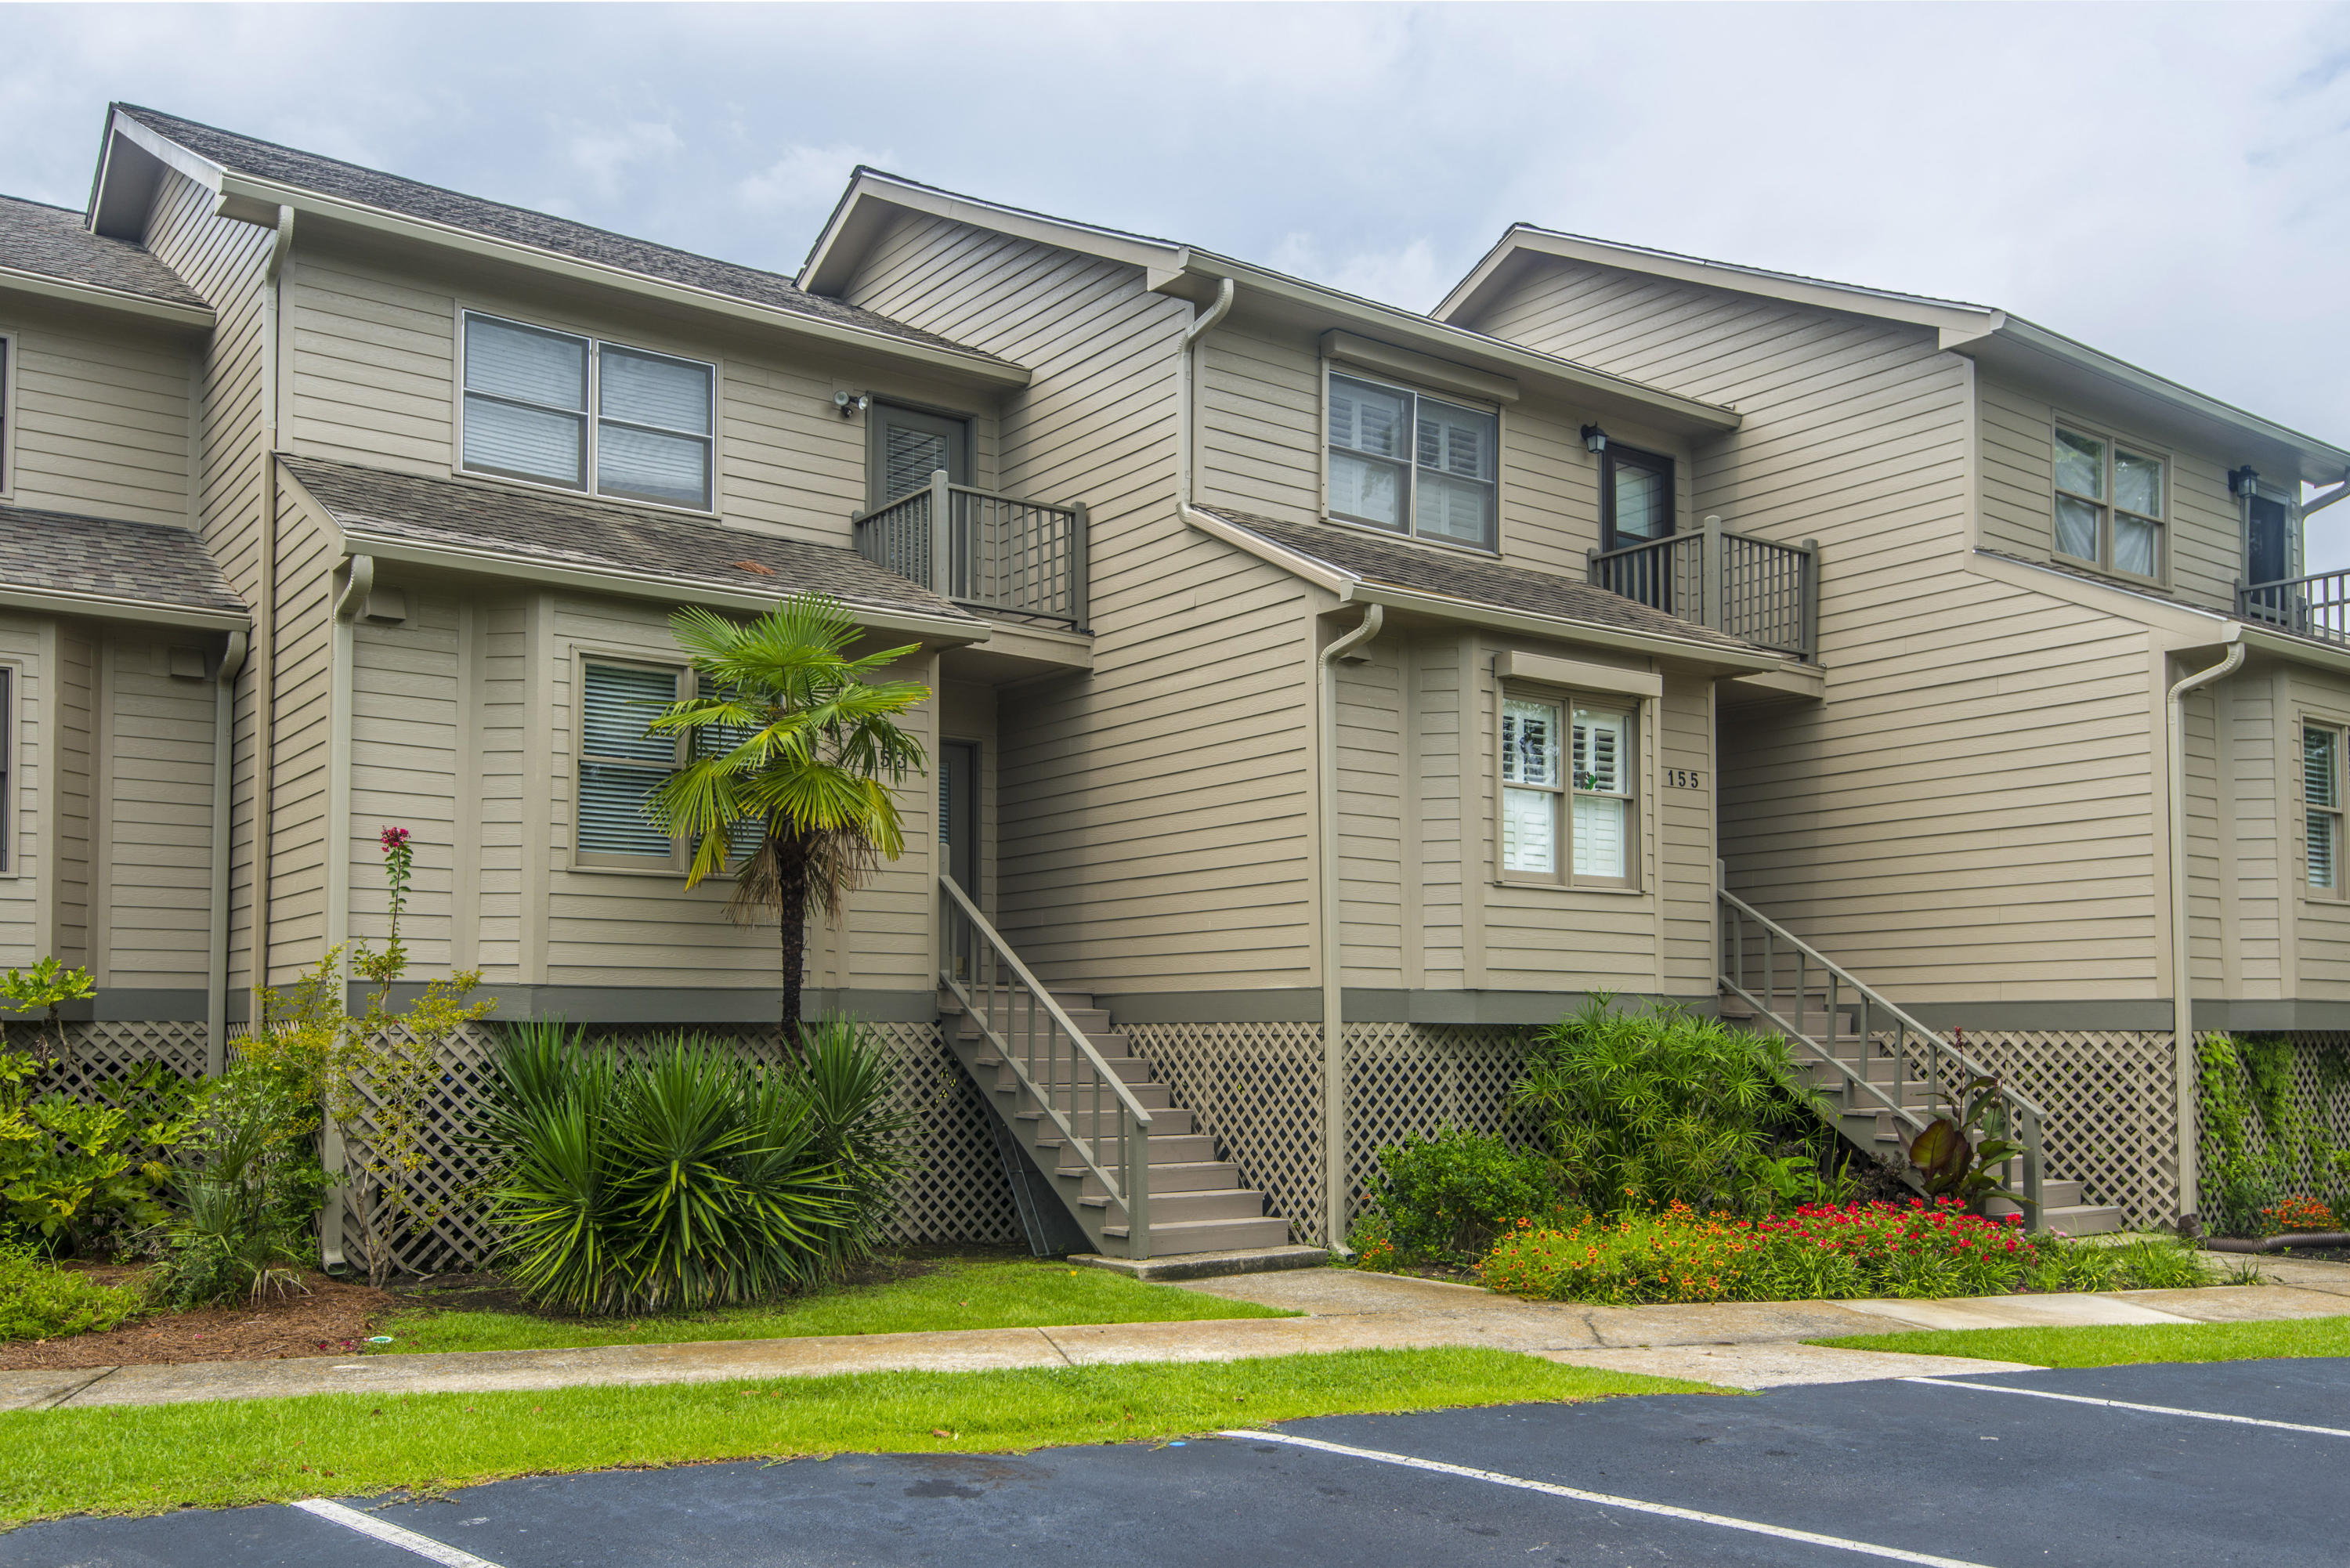 Waterway South Homes For Sale - 153 River Breeze, Charleston, SC - 13